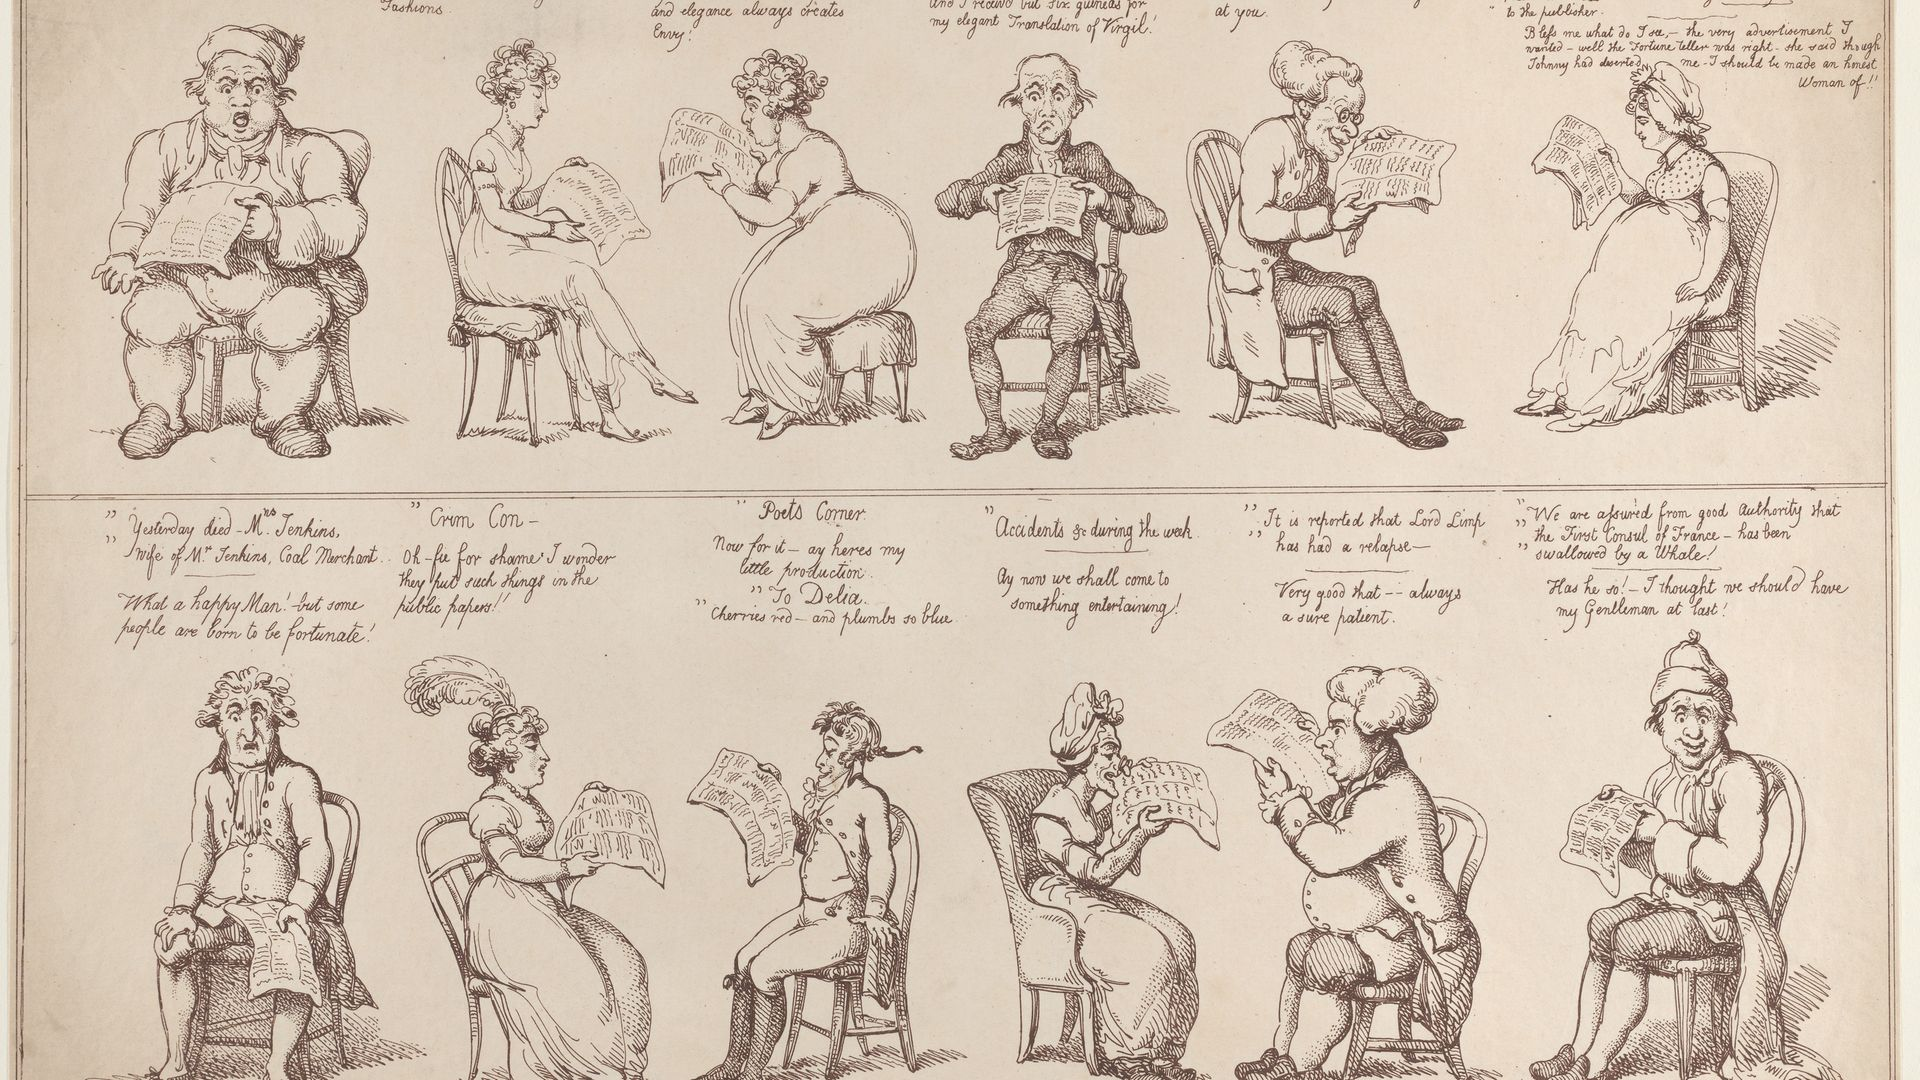 The News Paper, by Thomas Rowlandson, from 1808 - Credit: The Elisha Whittelsey Collection, The Elisha Whittelsey Fund, 1959